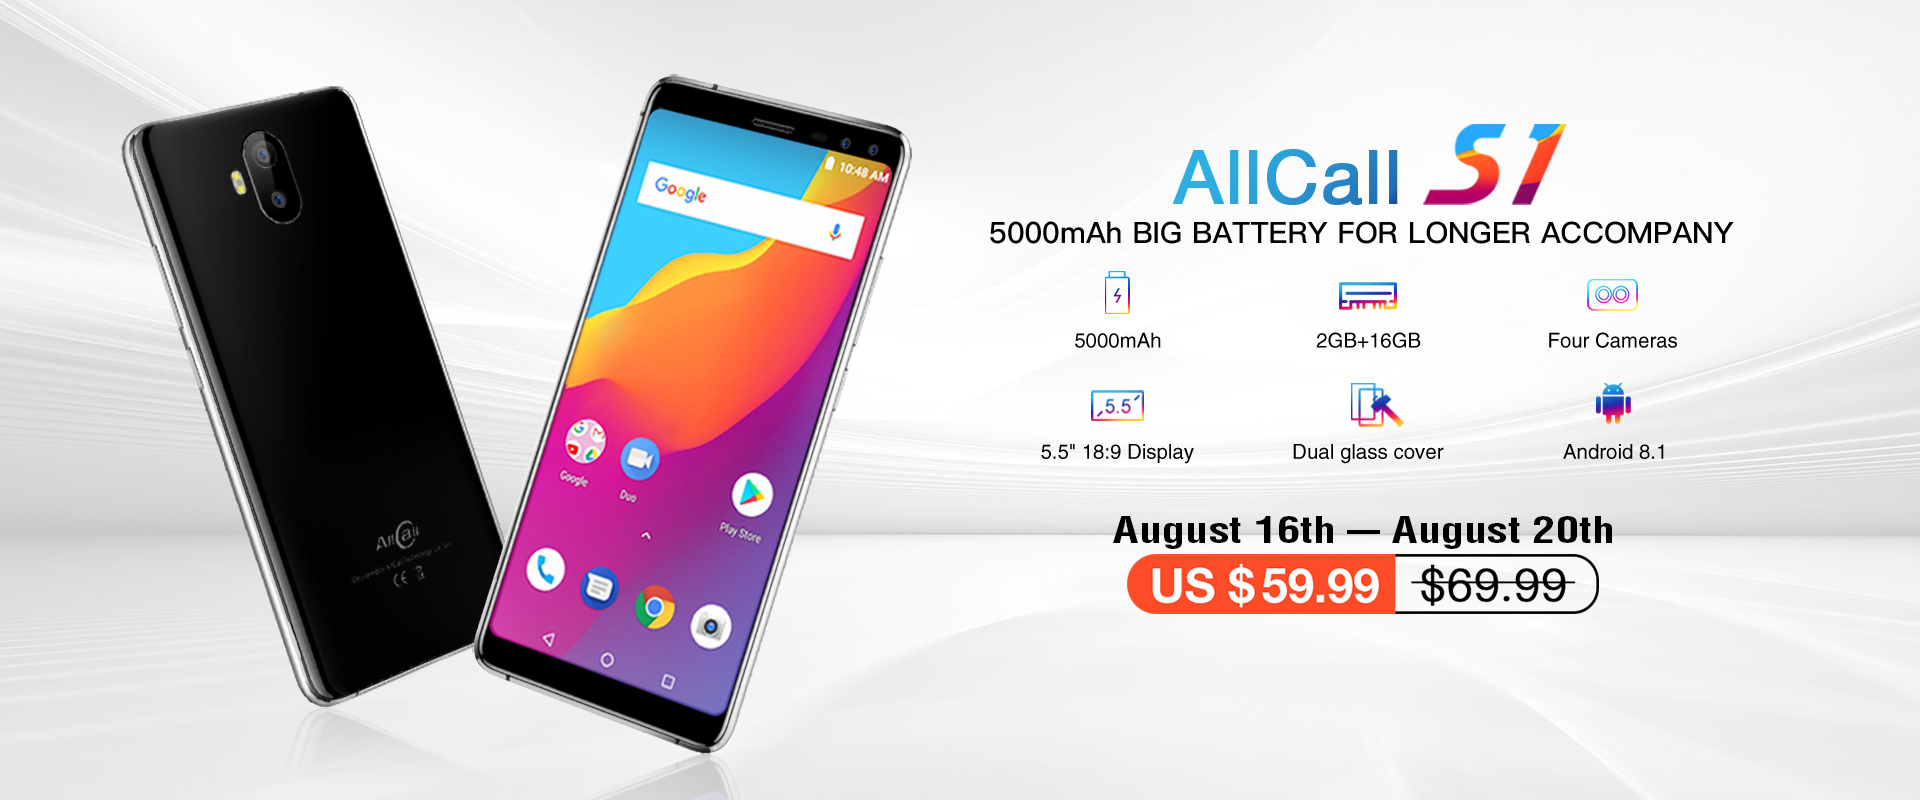 AllCall S1  smartphone at discount